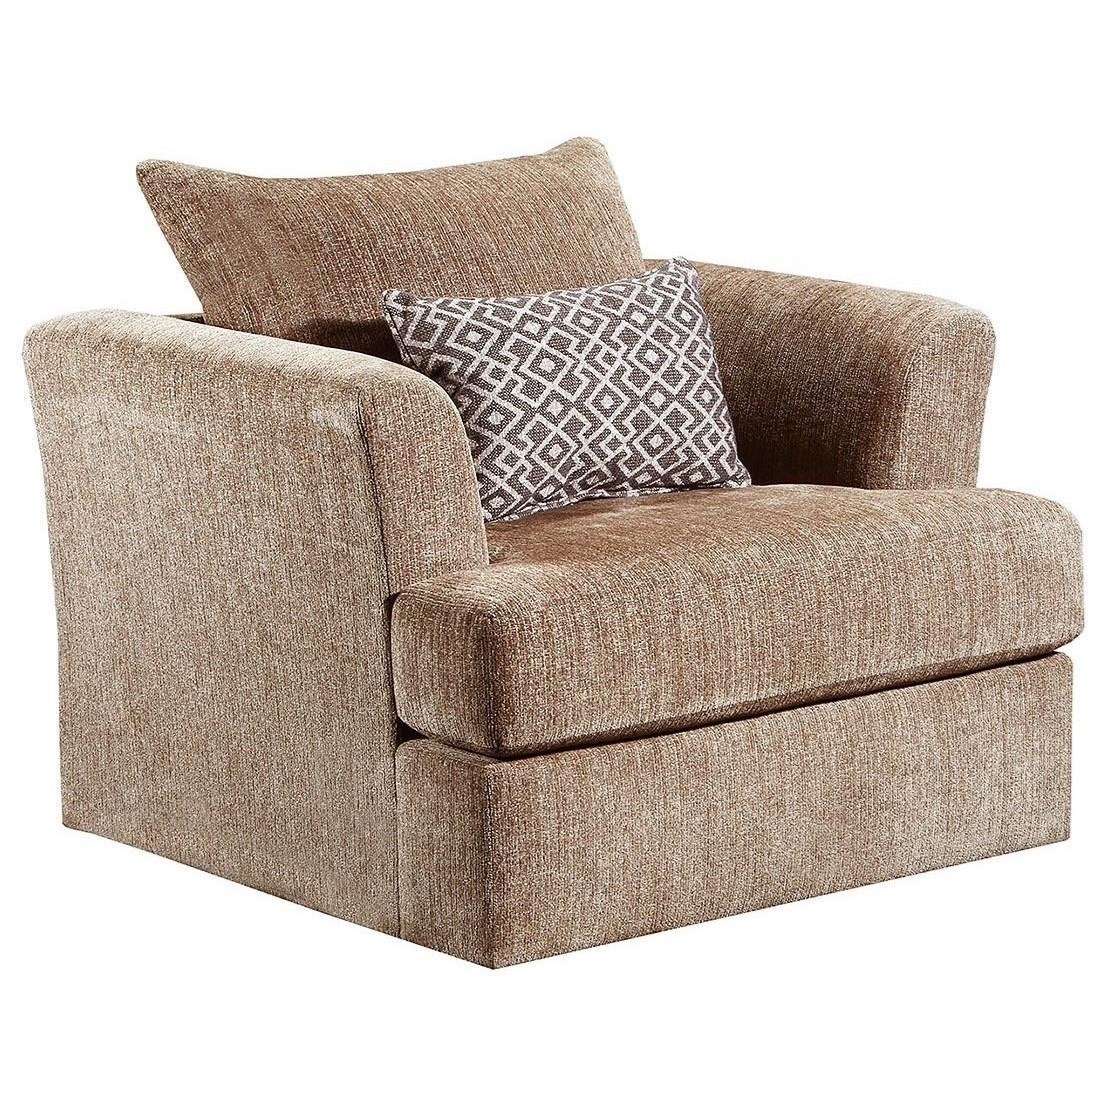 8009 Swivel Chair by Lane at Esprit Decor Home Furnishings